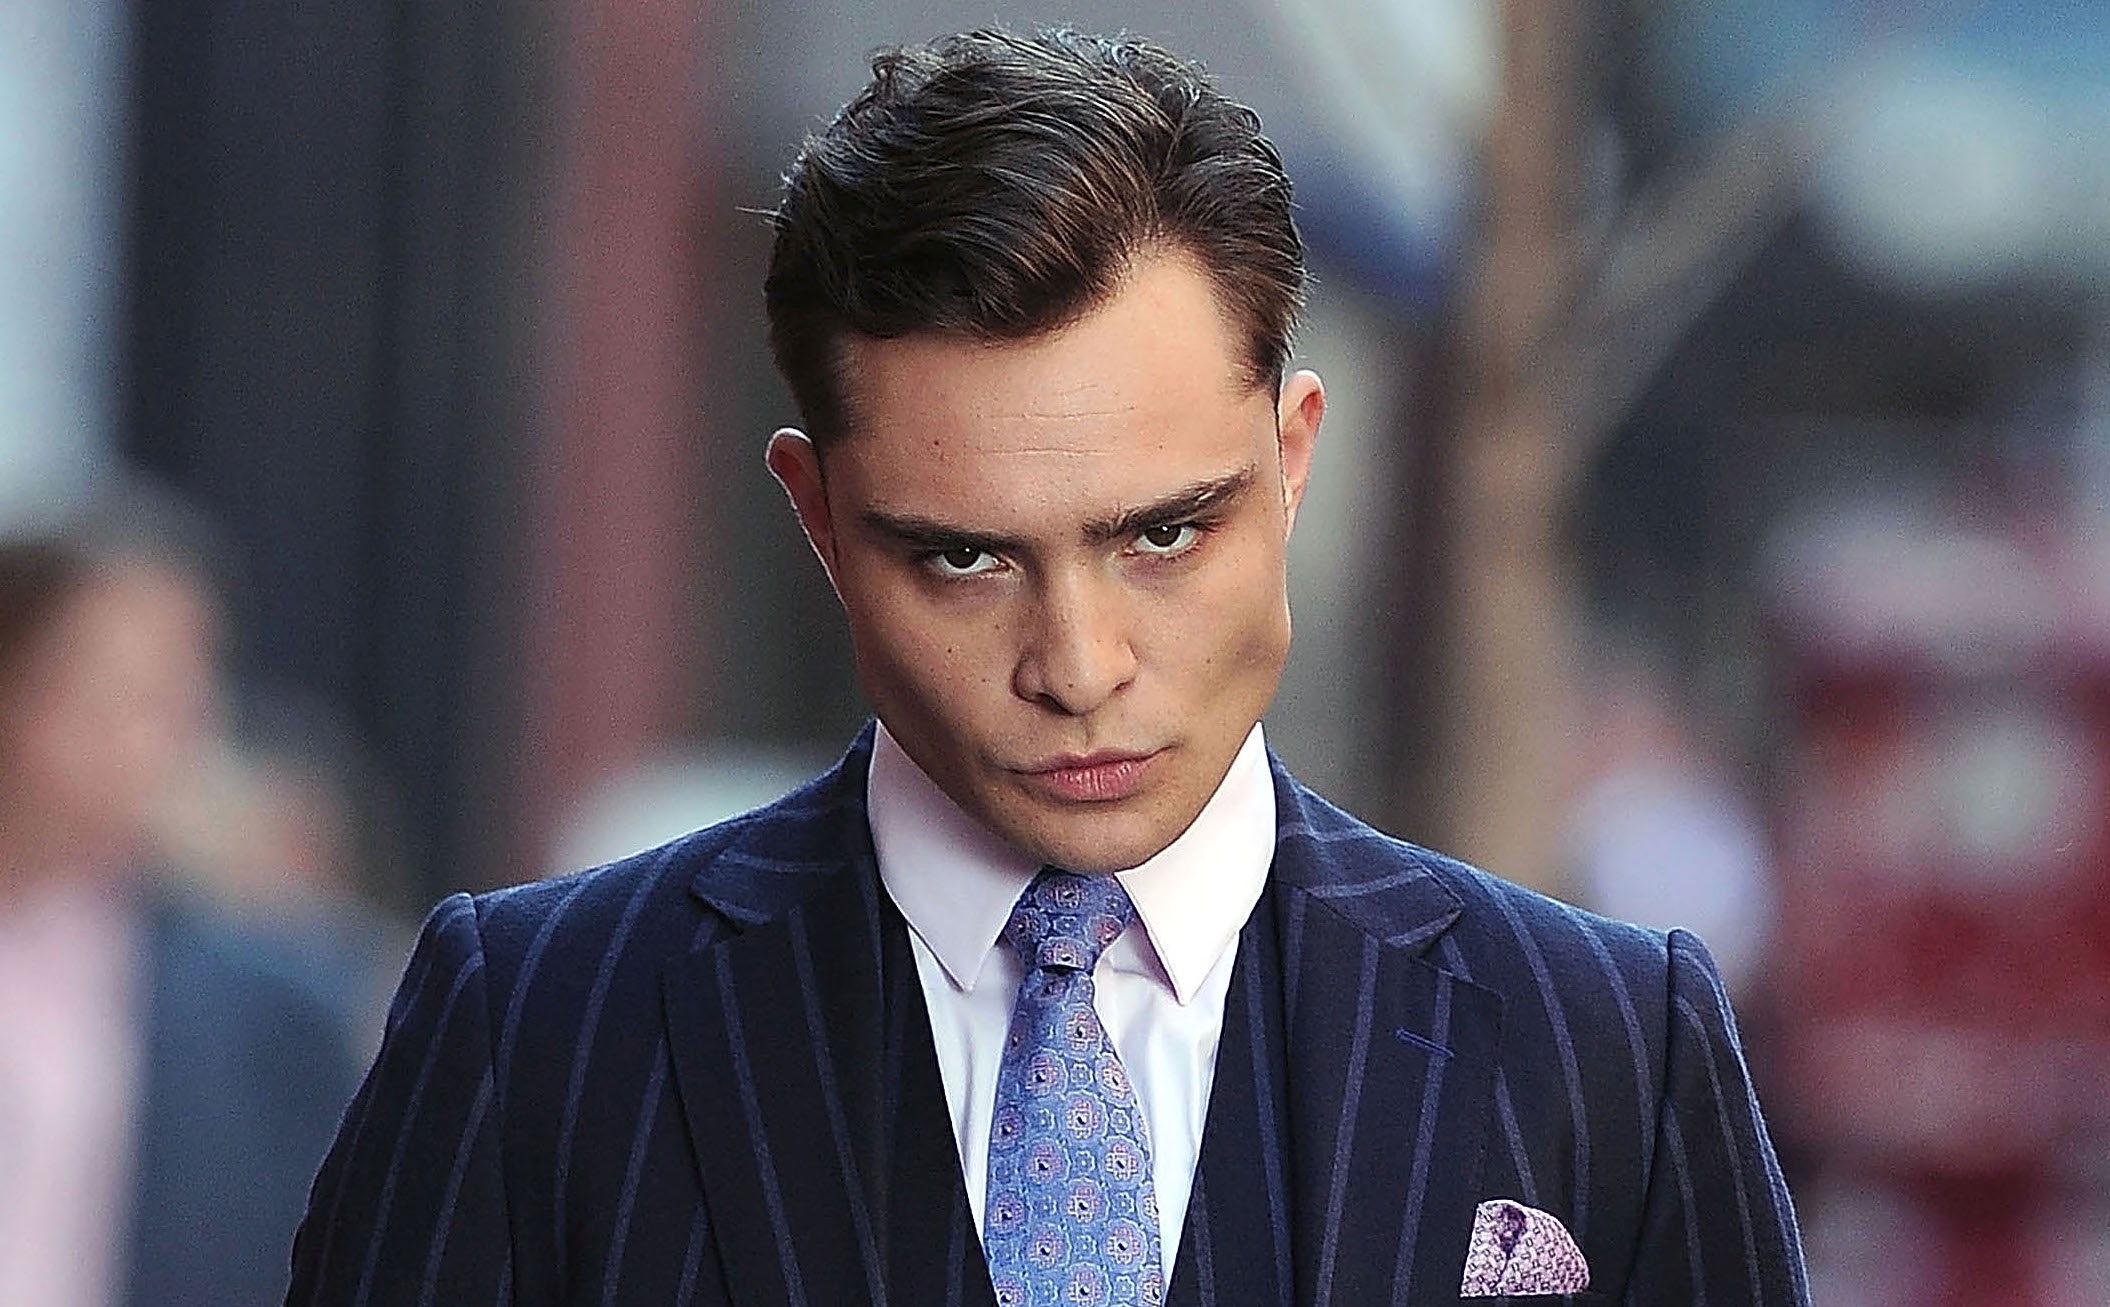 Was Chuck Bass a Rapist? The Gossip Girl Character Was a Predator